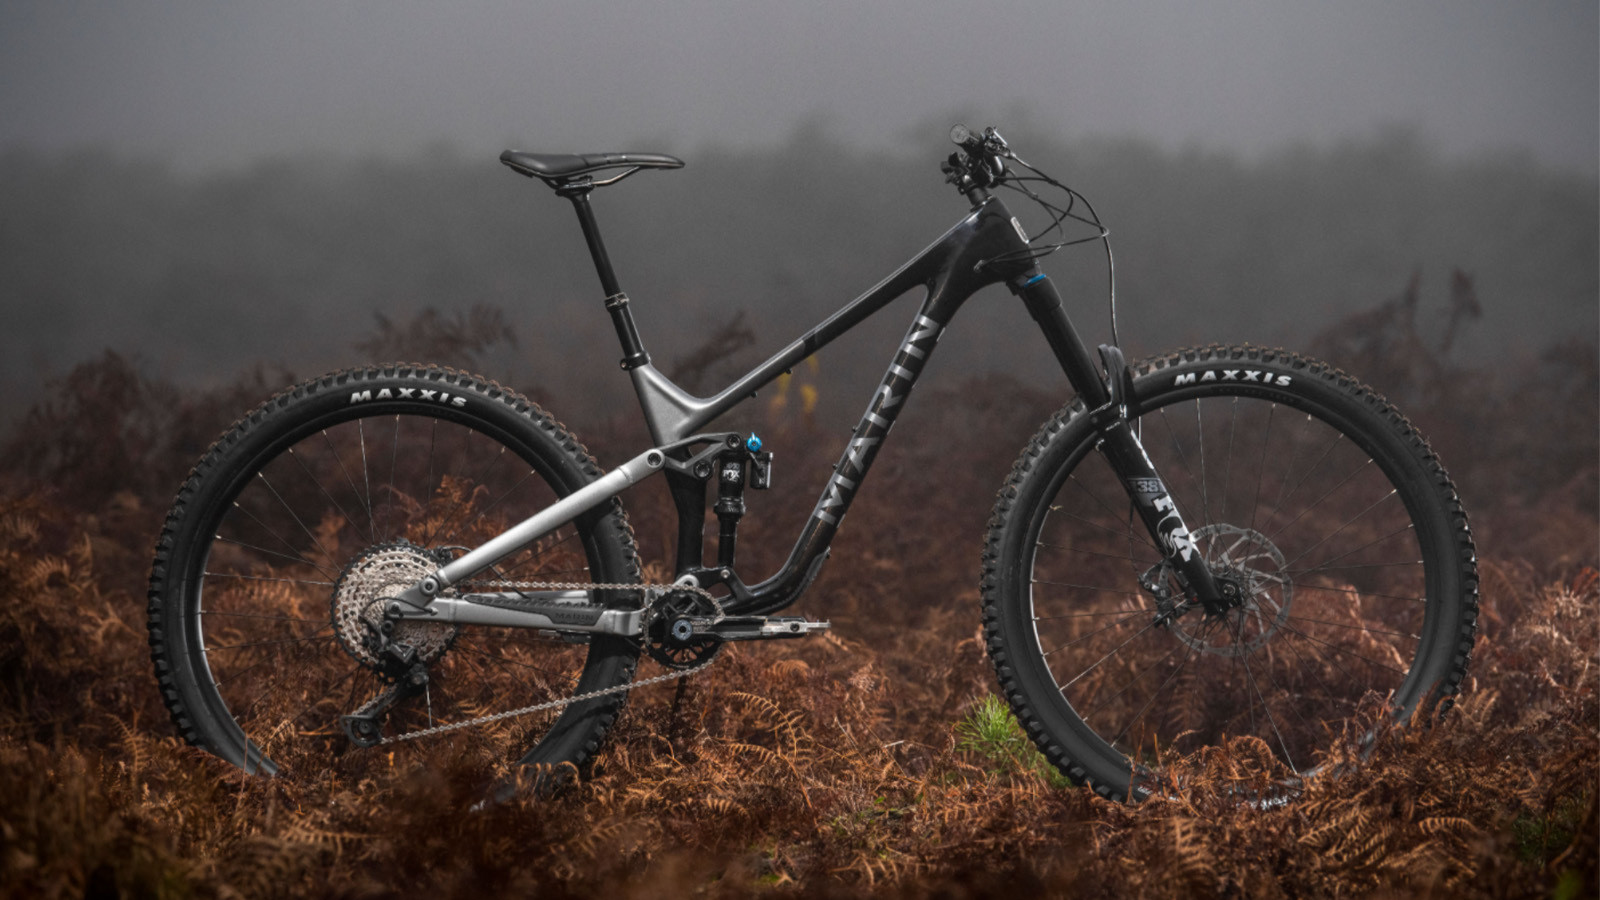 $4,099 - Does Marin's New Alpine Trail Carbon Throw Down the Gauntlet?